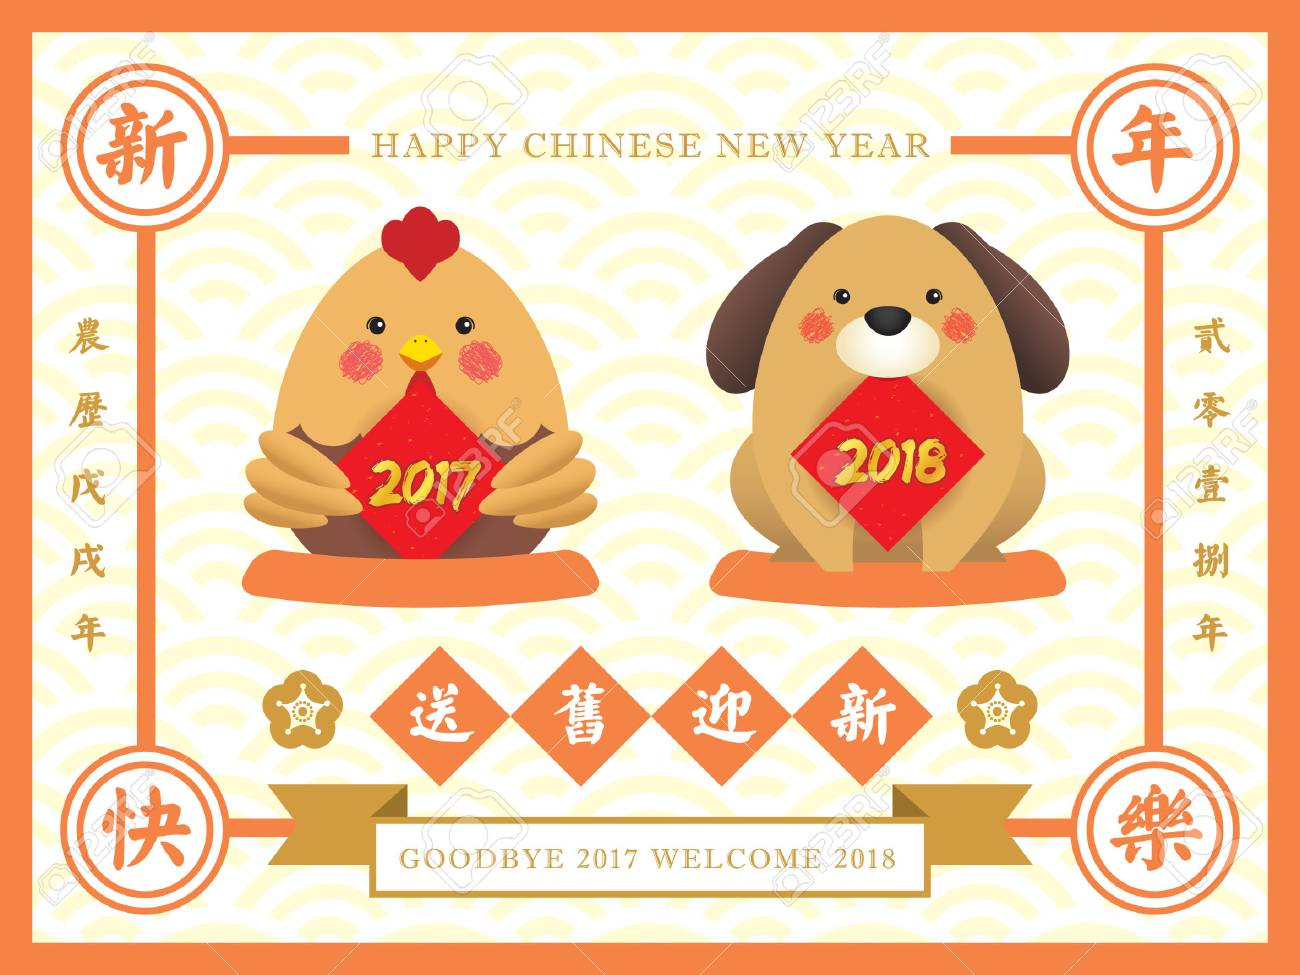 Chinese new year greeting card with cute cartoon chicken and chinese new year greeting card with cute cartoon chicken and dog with couplet in vintage style m4hsunfo